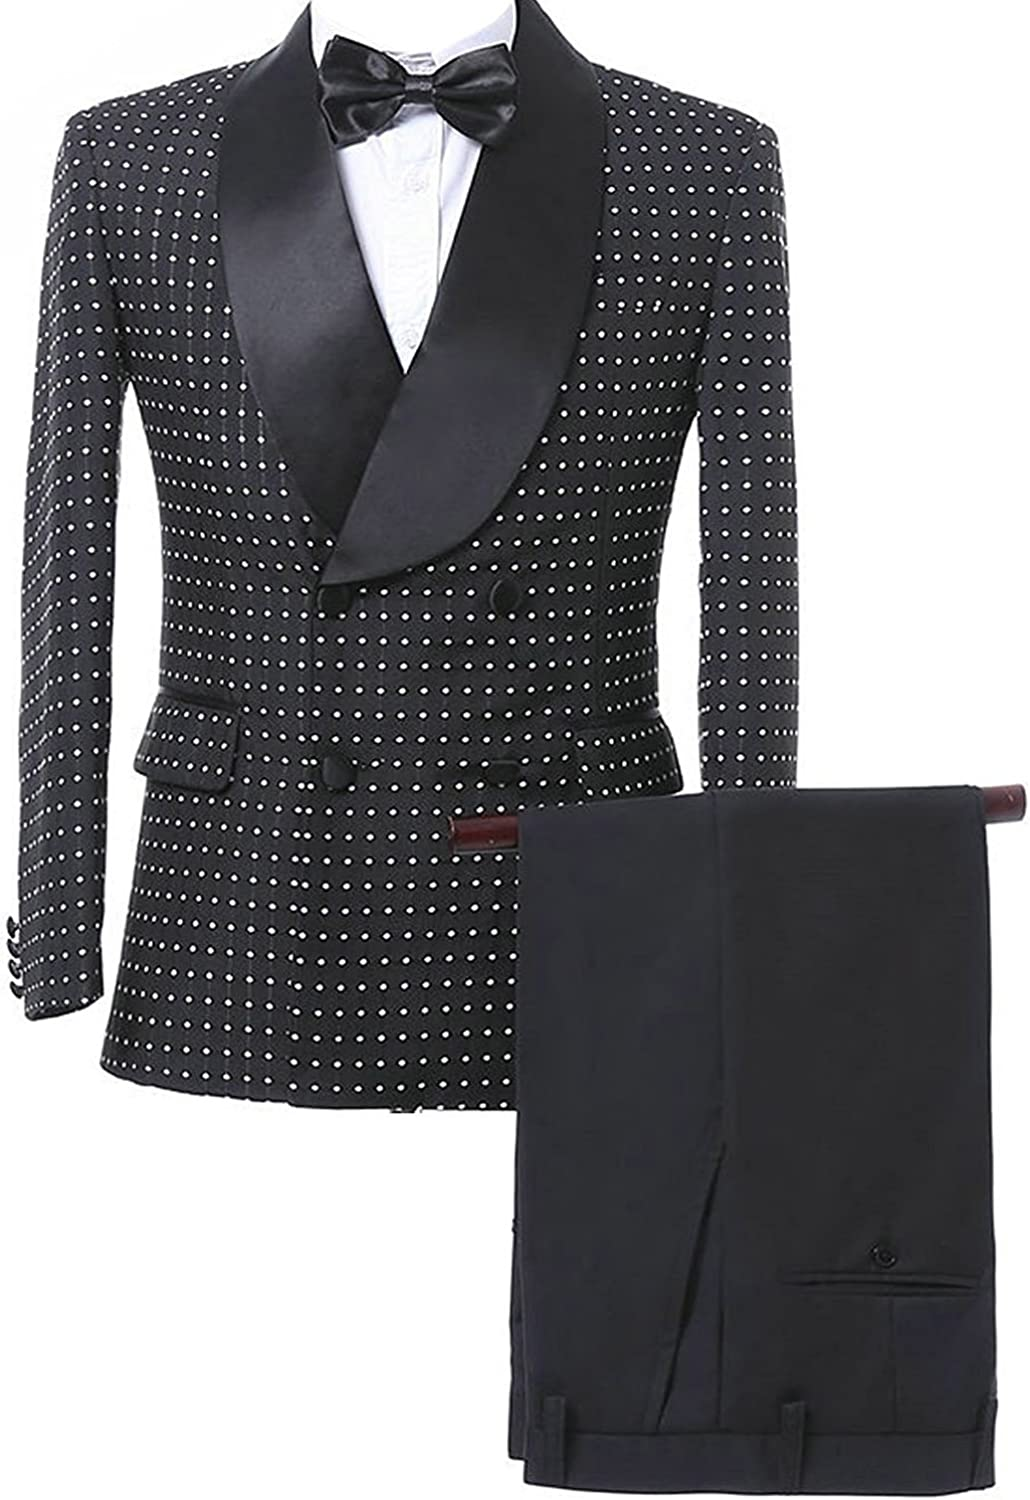 Mens 2-Piece New York Mall Double-Breasted Silm Fit for Men Formal Super Special SALE held Suits Blaze